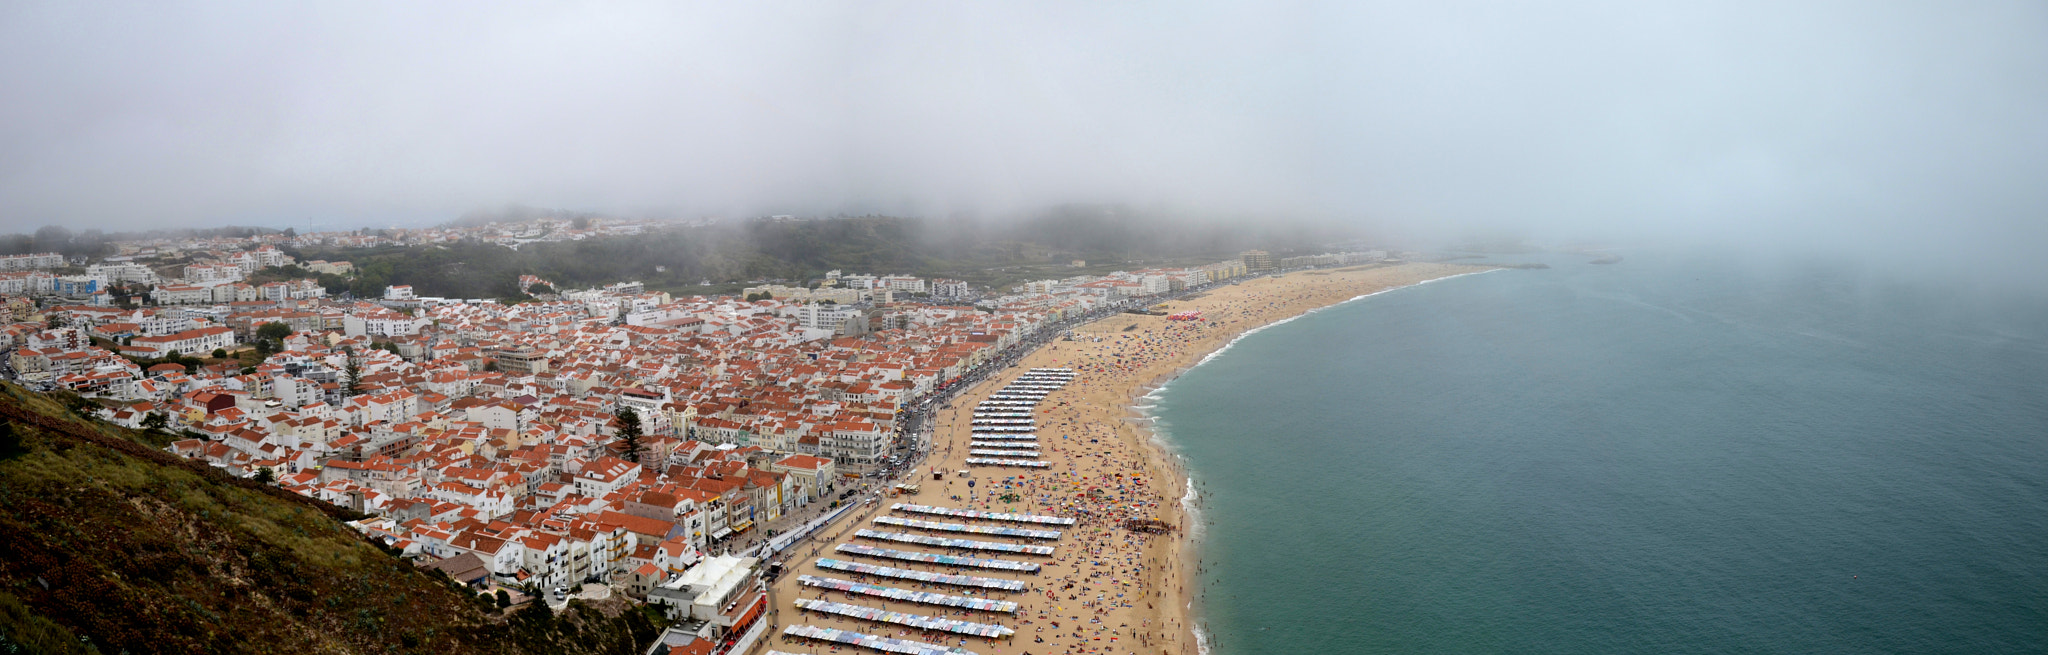 Photograph Panorama Nazaré by Johnny Mendes on 500px